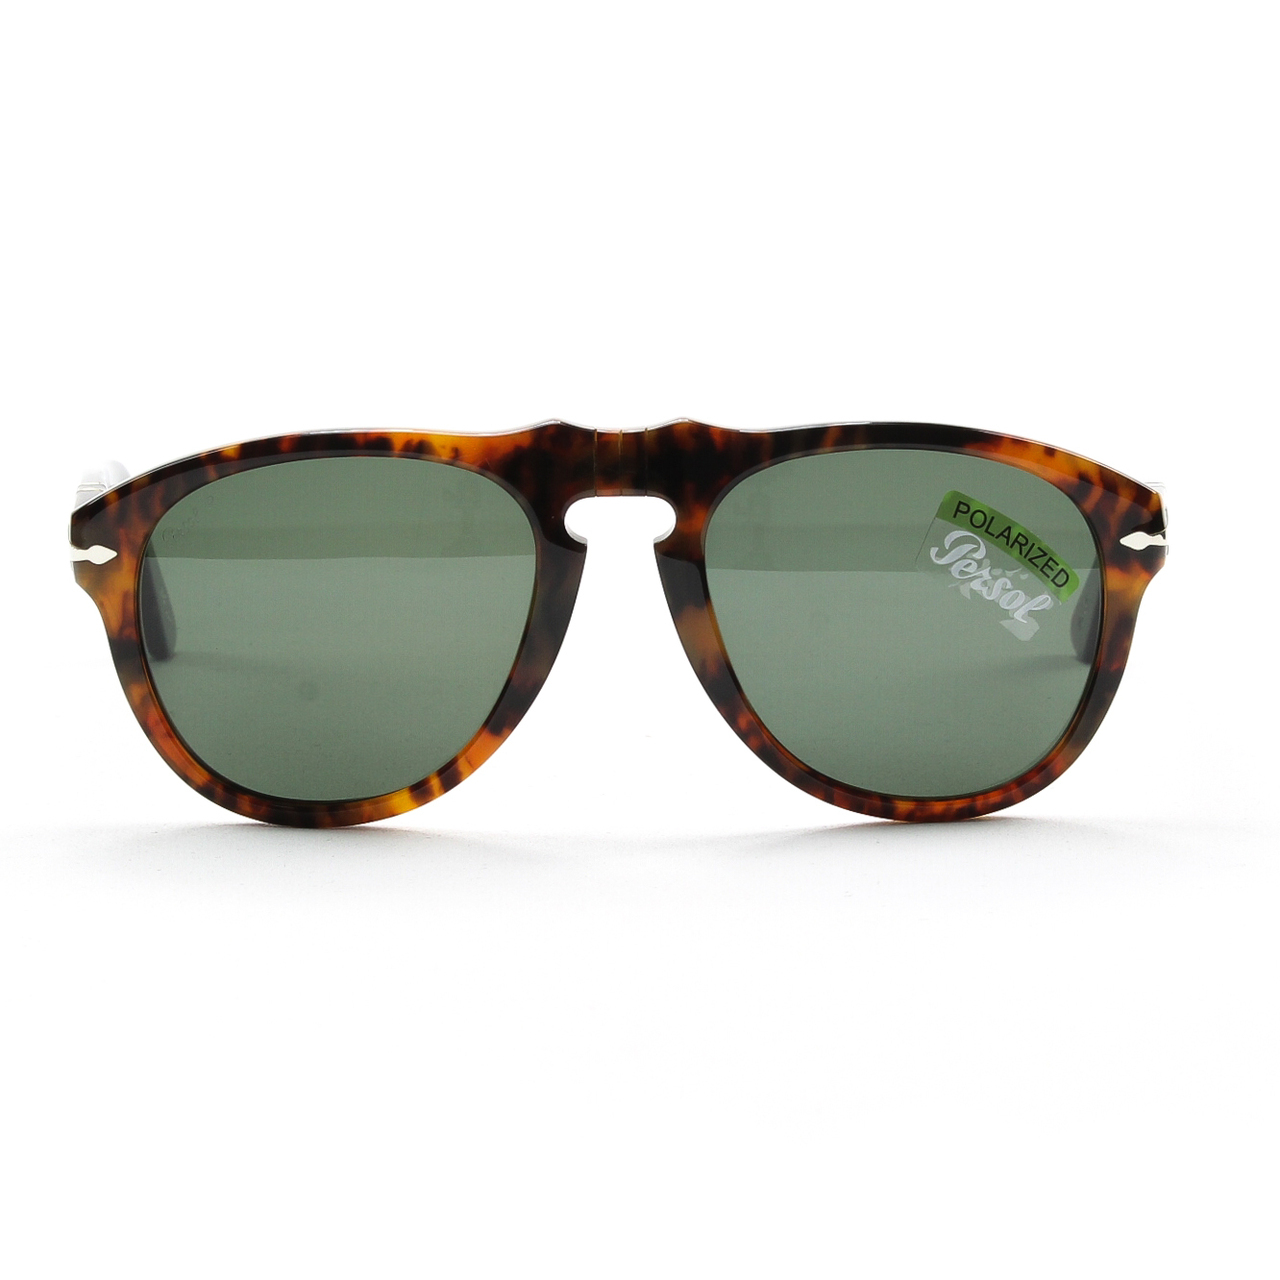 ace8de43b5f Persol 649 Blue Polarized. Persol 649 Polarized Sunglasses 2010